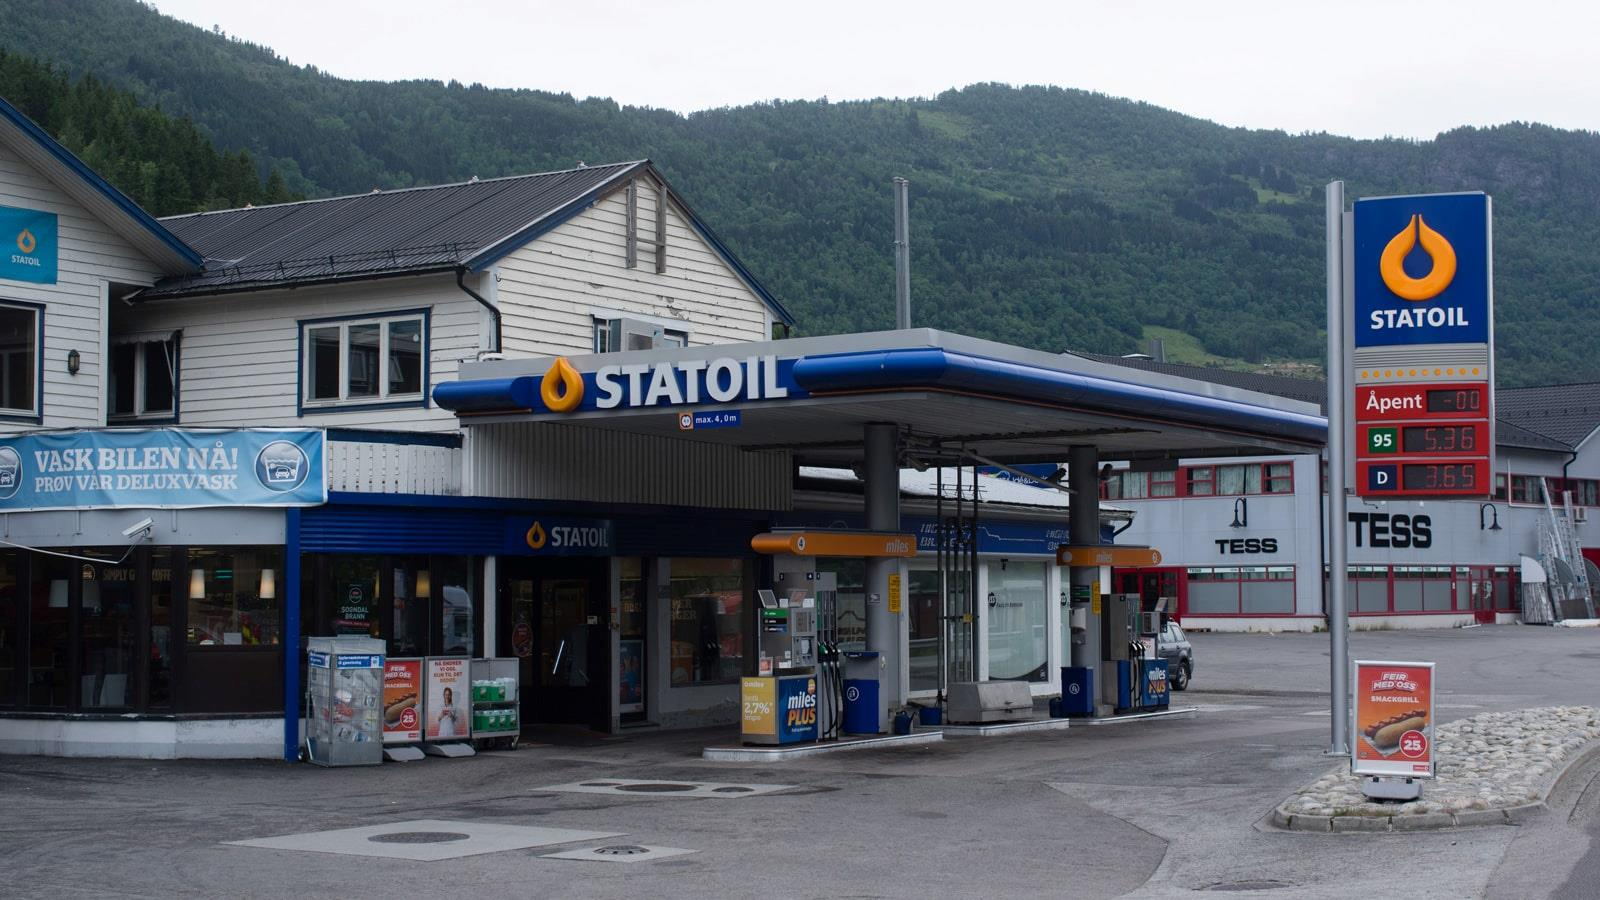 Statoil petrol station and shop